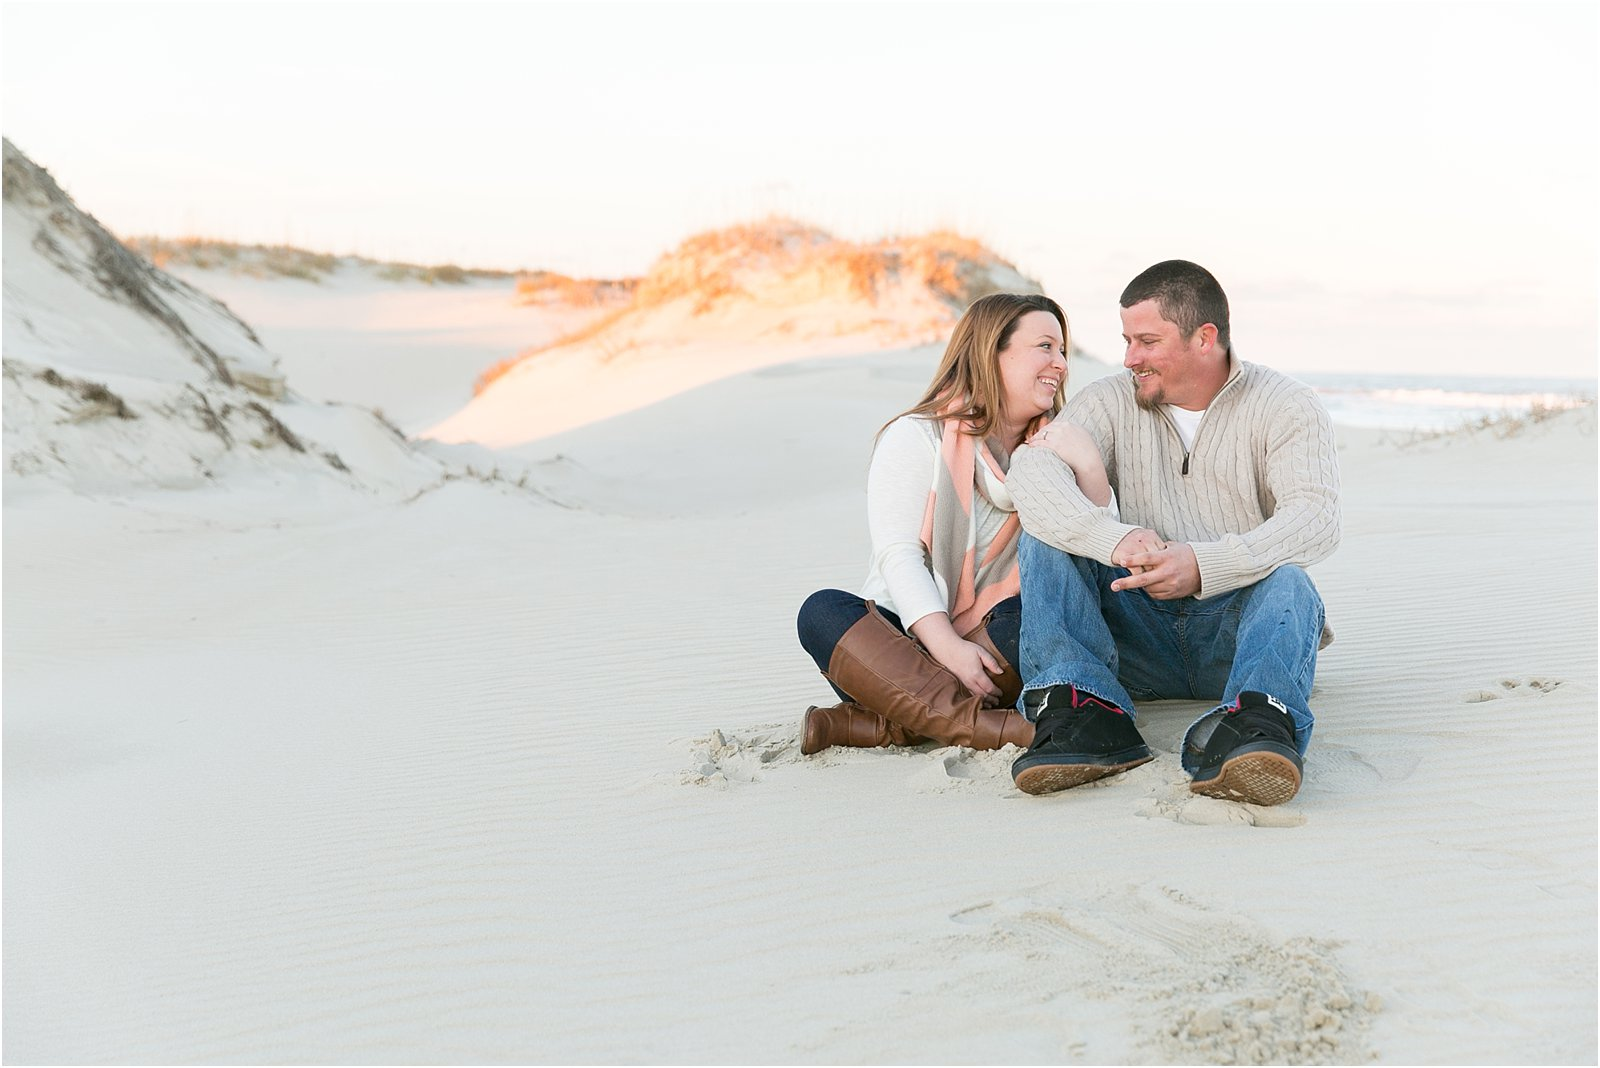 jessica_ryan_photography_pumpkin_patch_engagement_portraits_fall_october_engagements_virginia_beach_chesapeake_0329